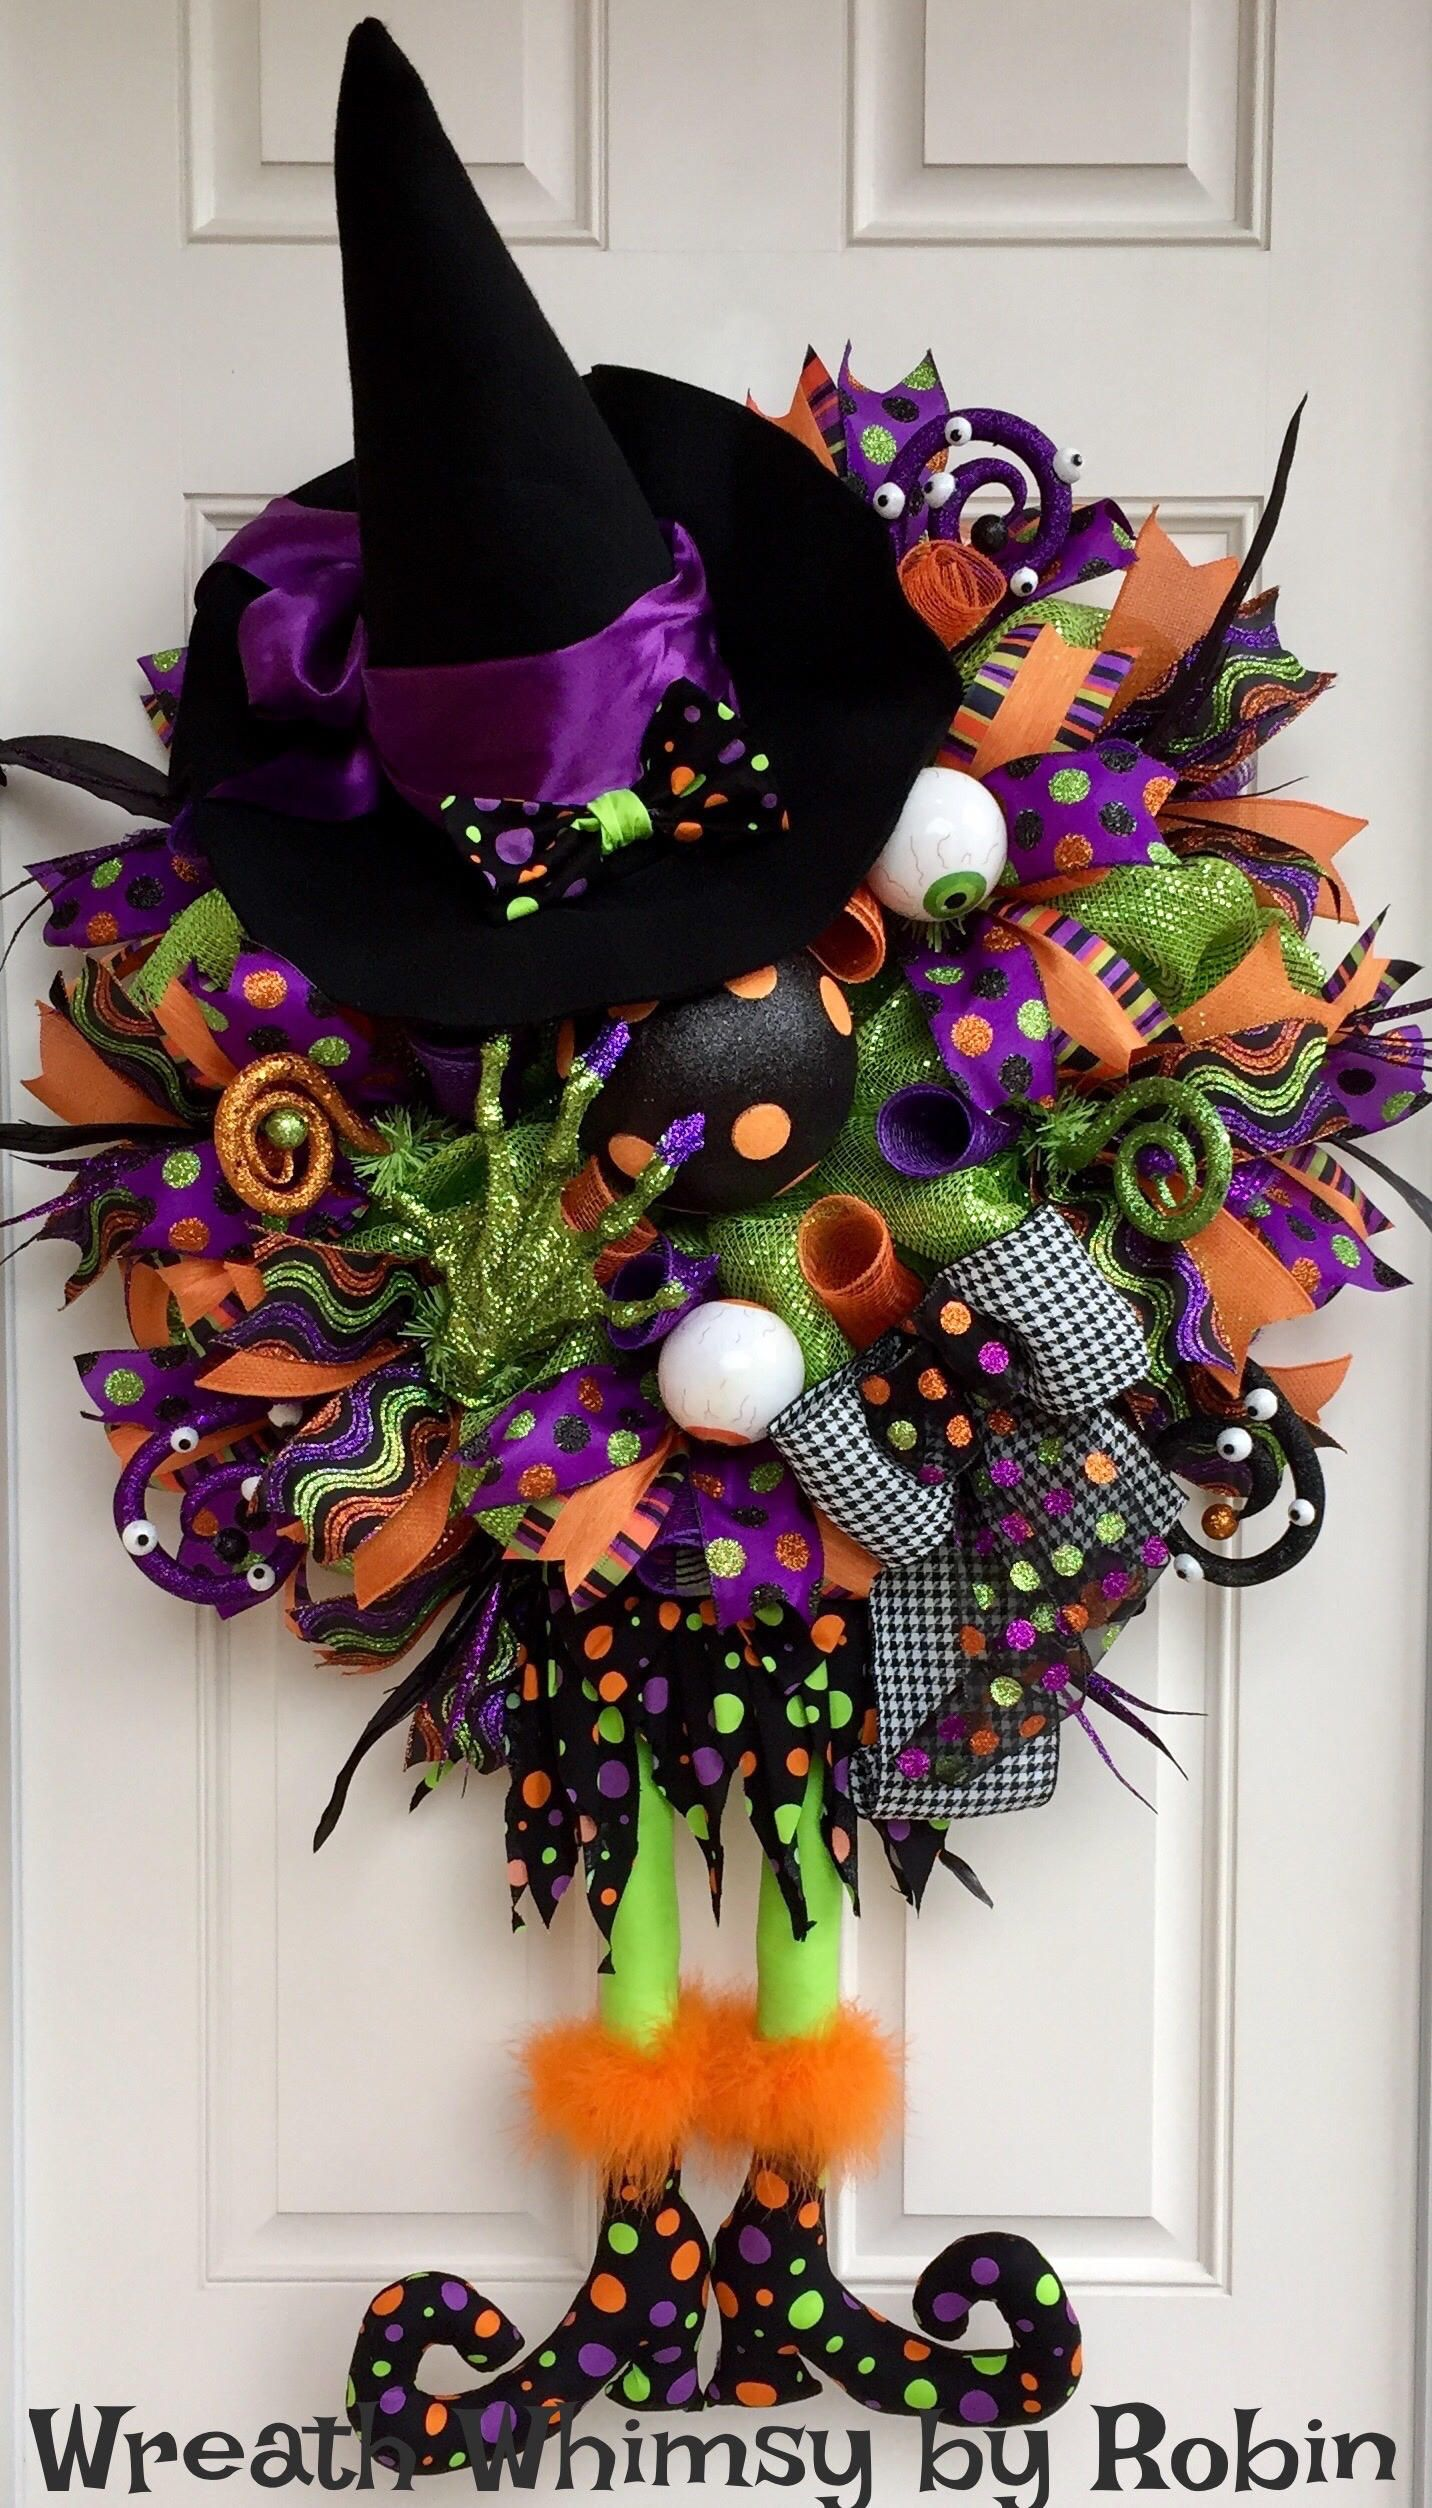 XL Deco Mesh Halloween Witch Wreath in Green, Purple, Black  Orange - Whimsical Halloween Decorations